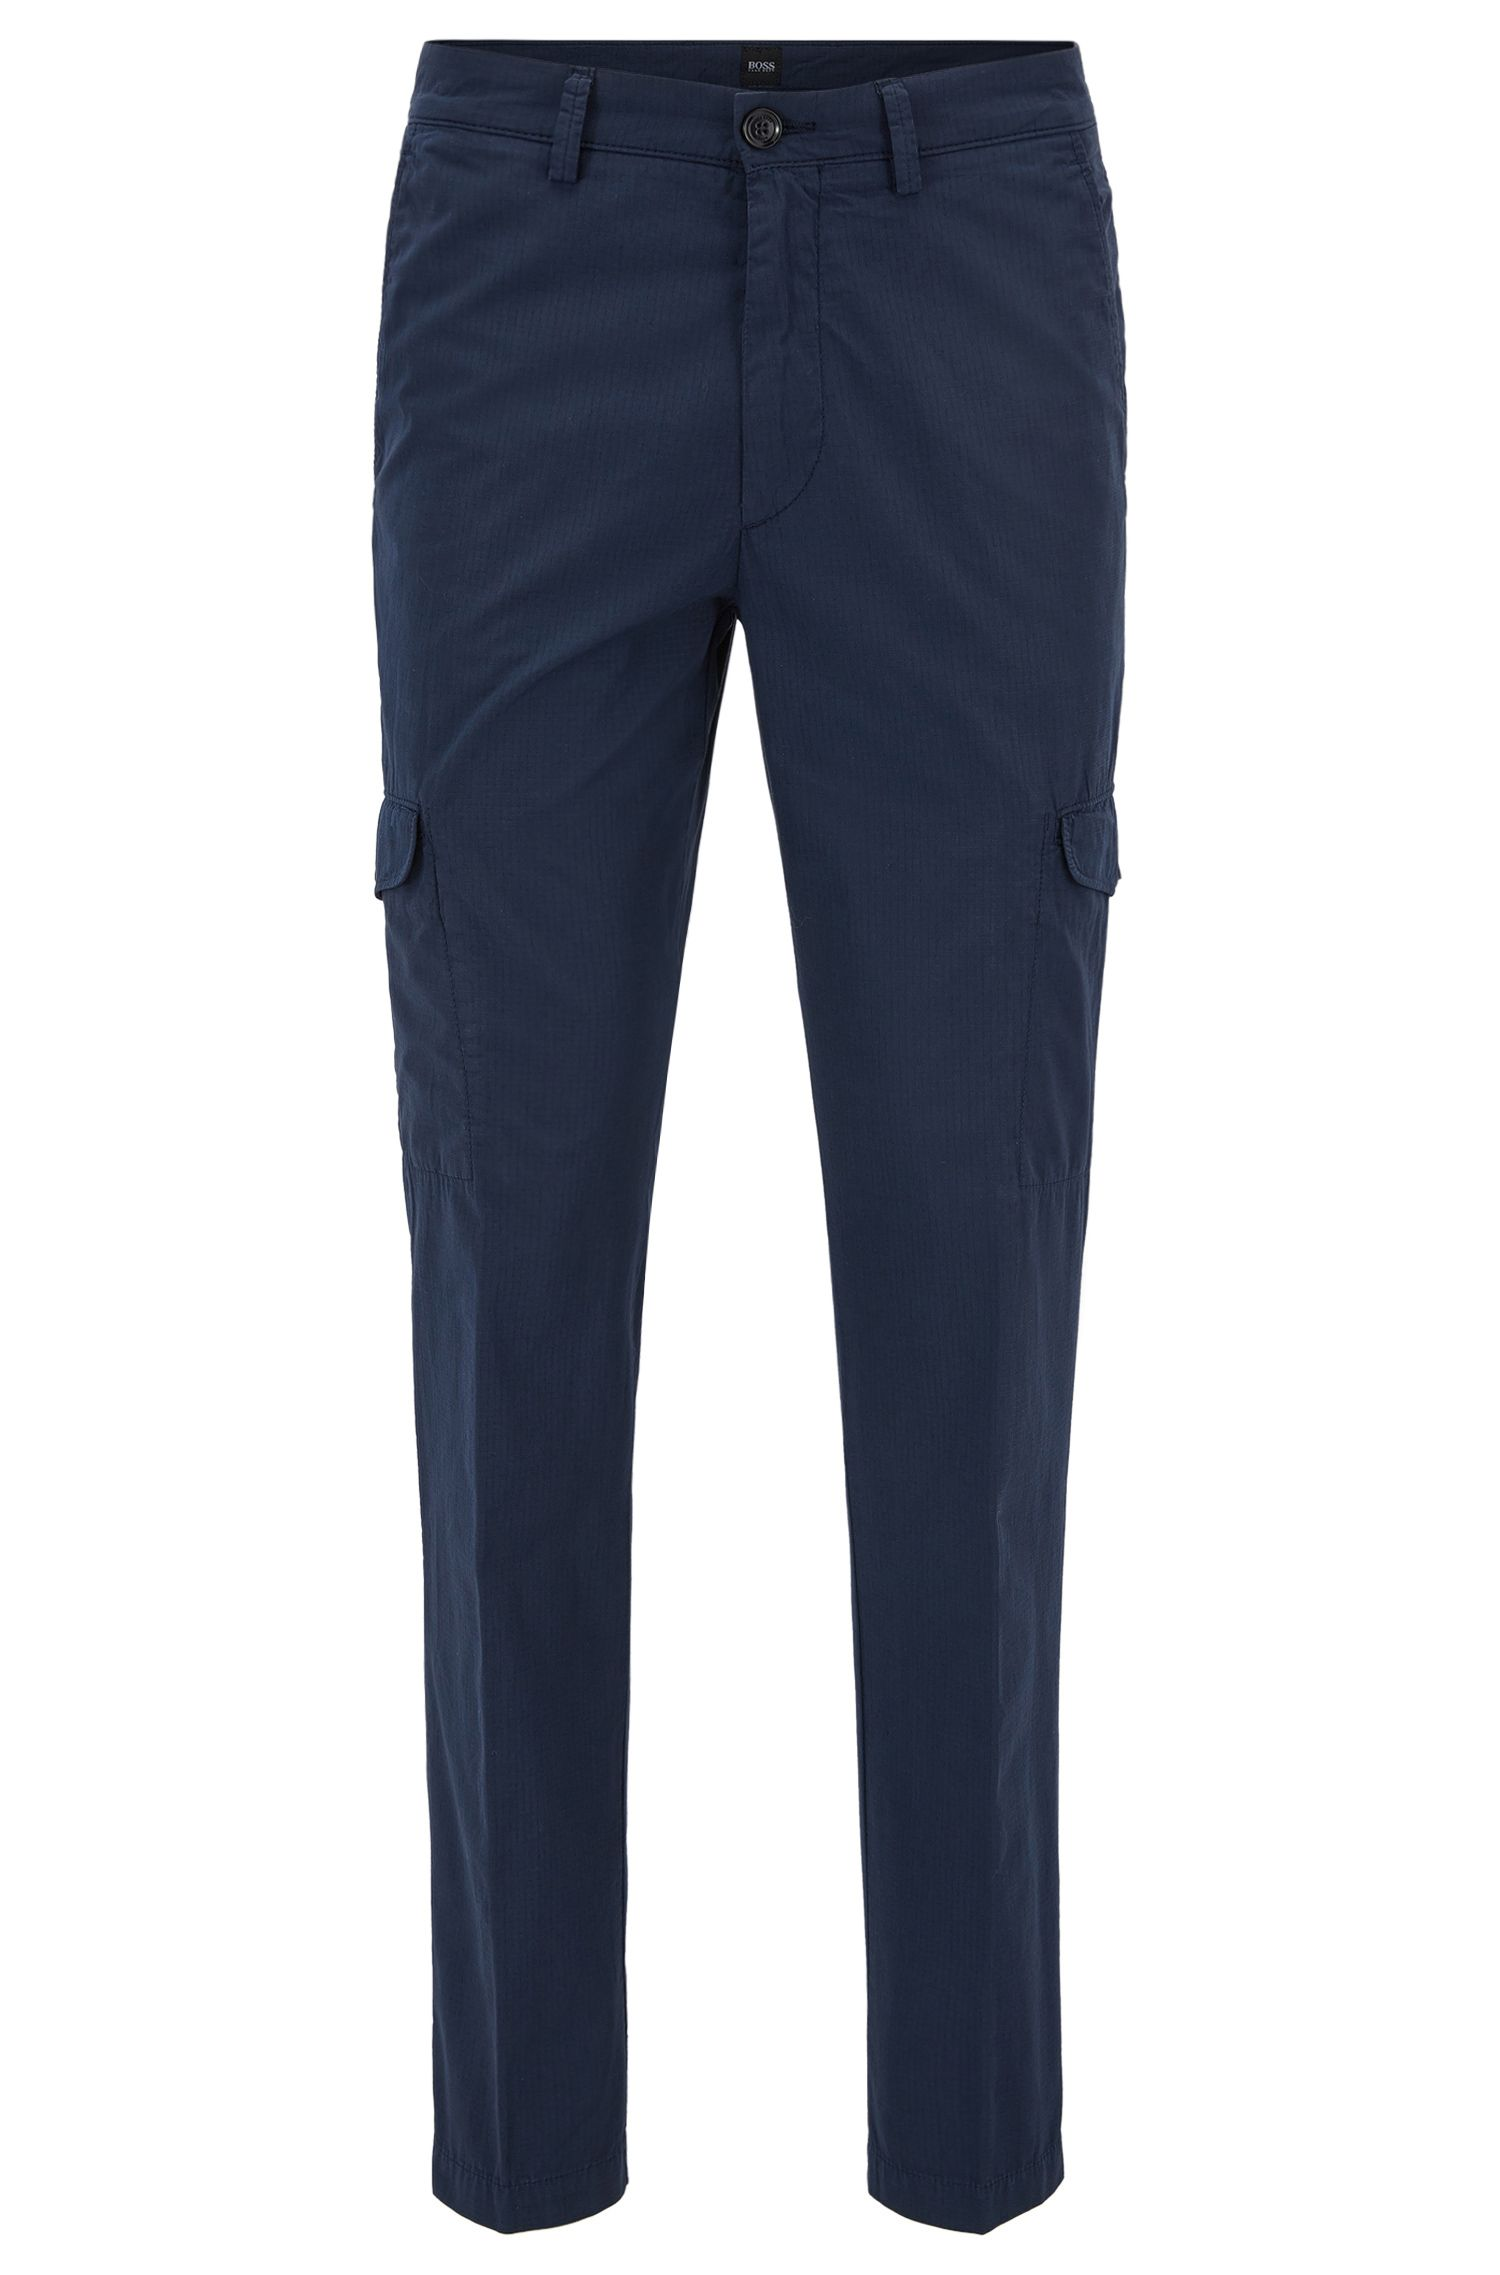 Cotton Cargo Pant, Tapered Fit | Kailo D